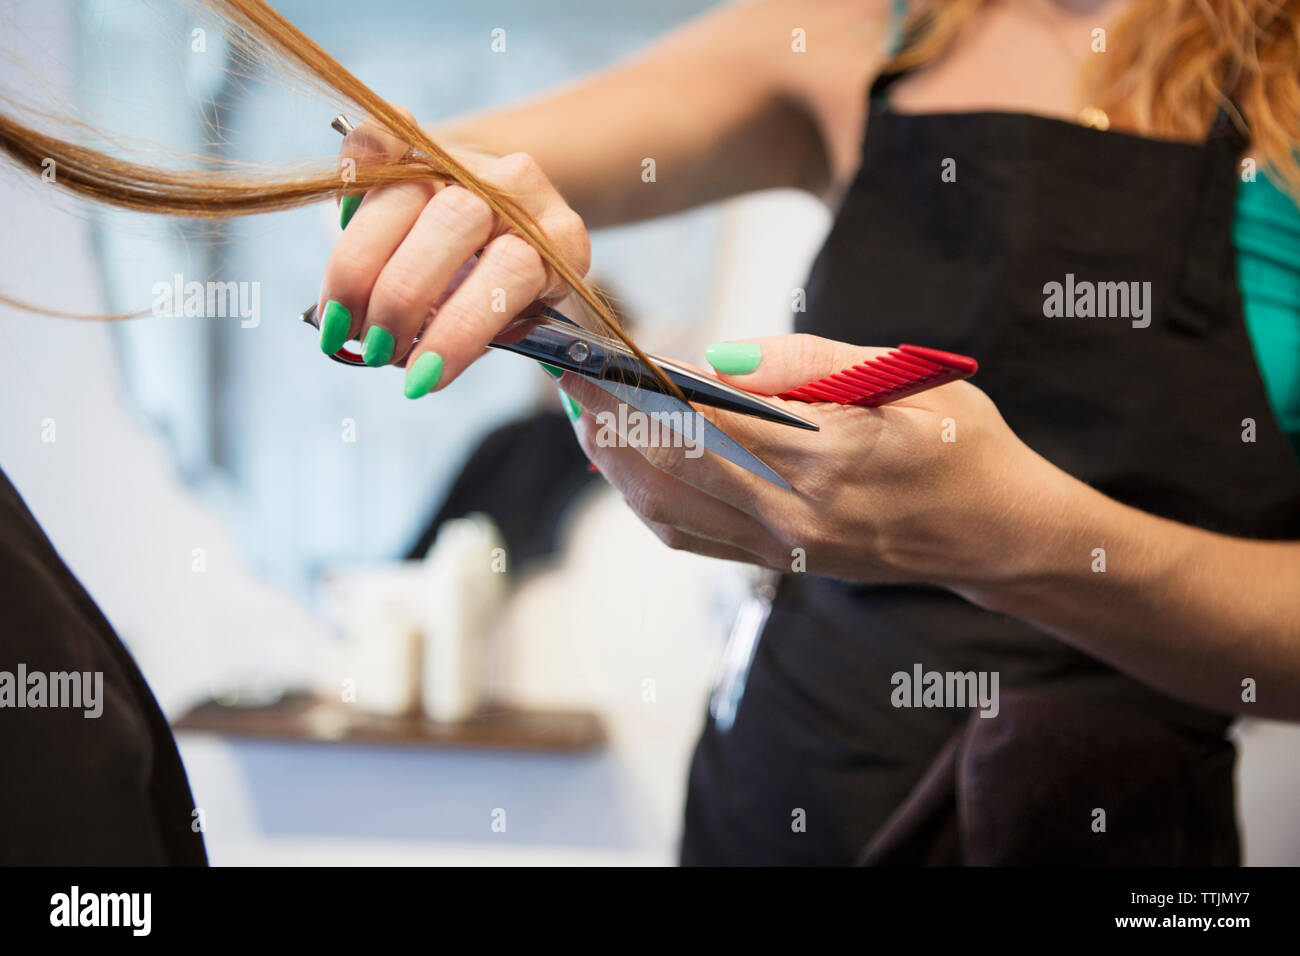 Midsection of hairstylist cutting woman's hair in salon - Stock Image